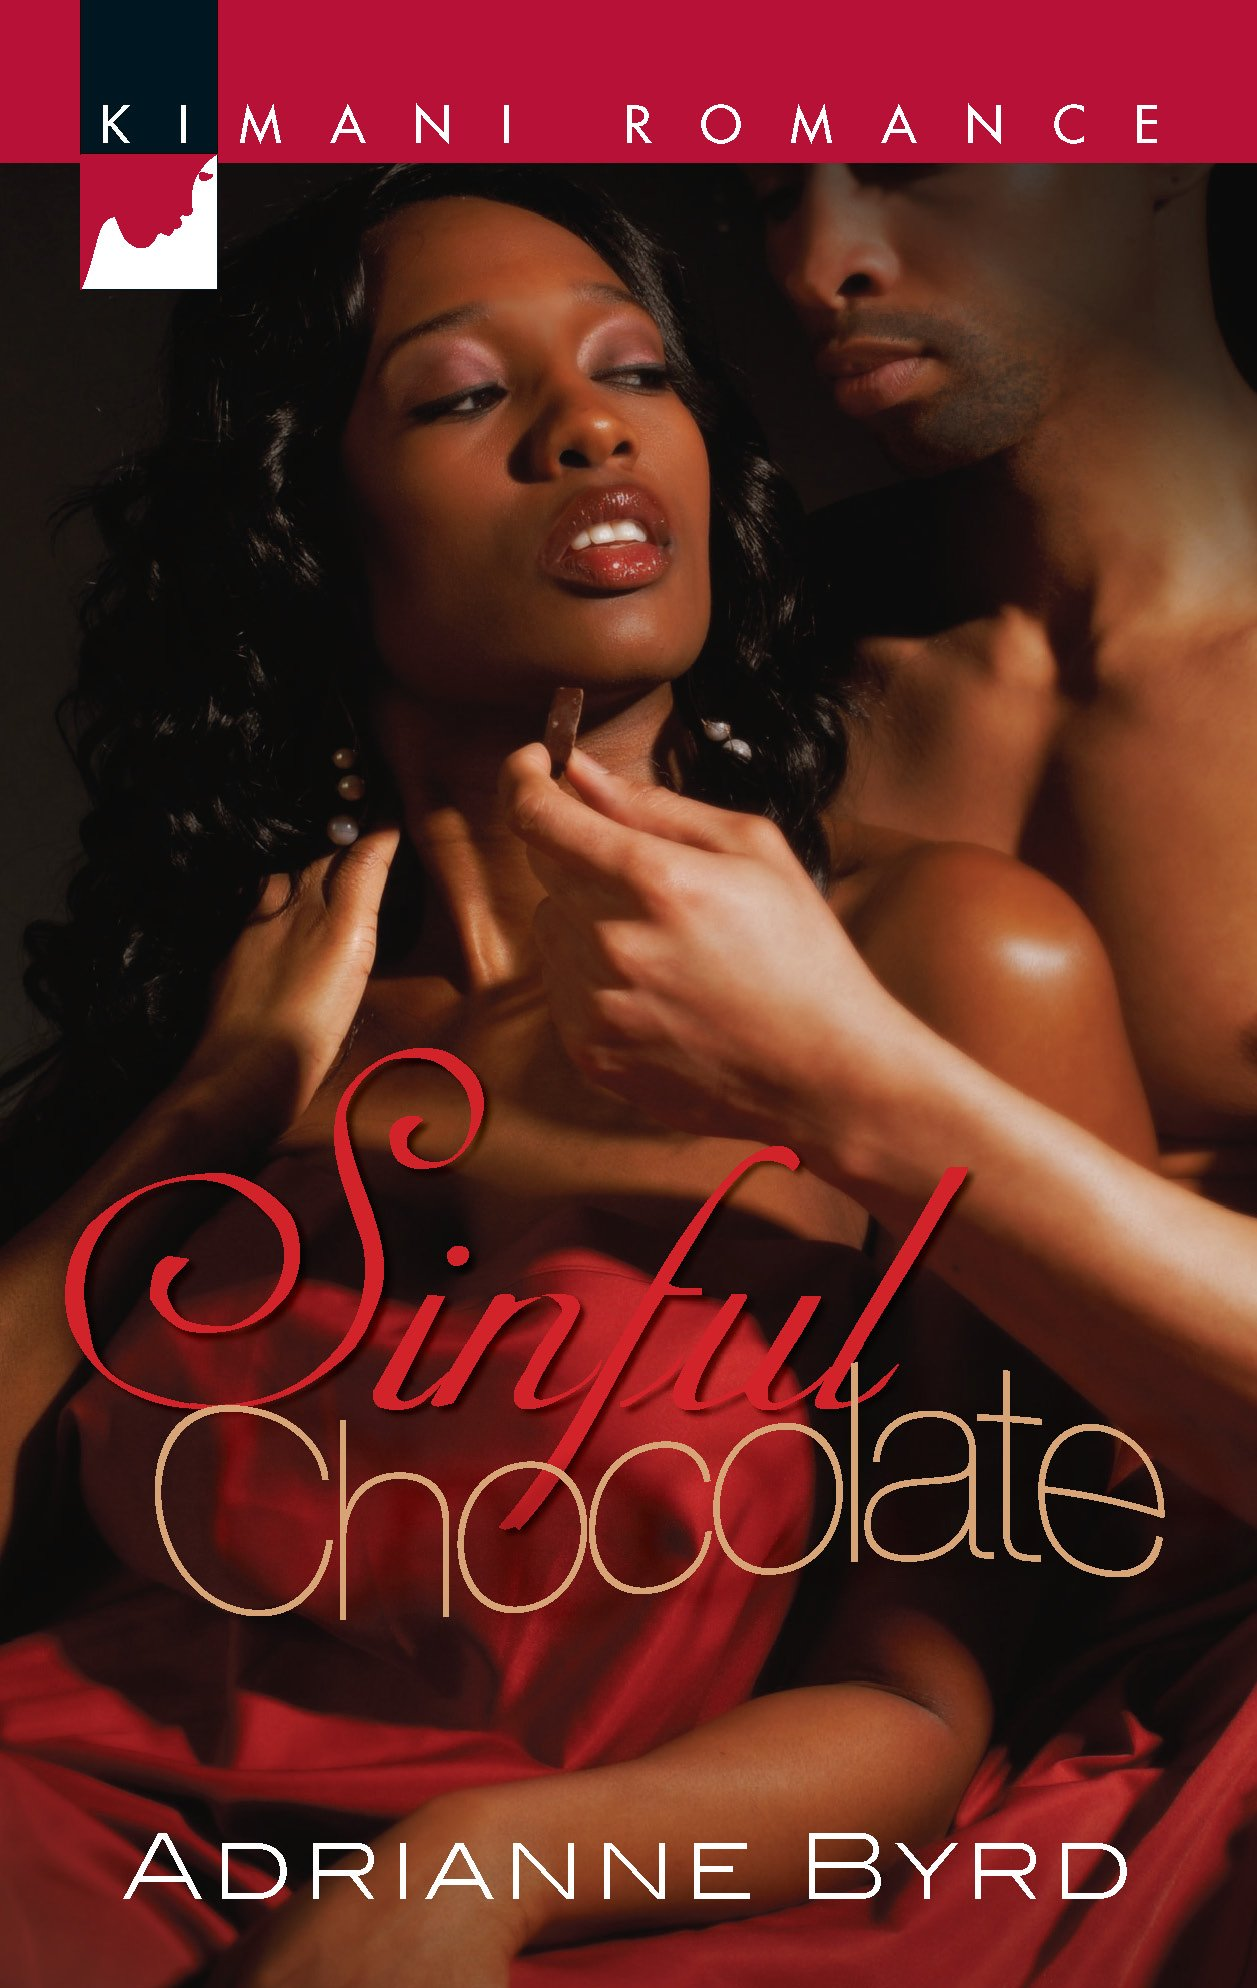 Image result for sinful chocolate adrianne byrd""